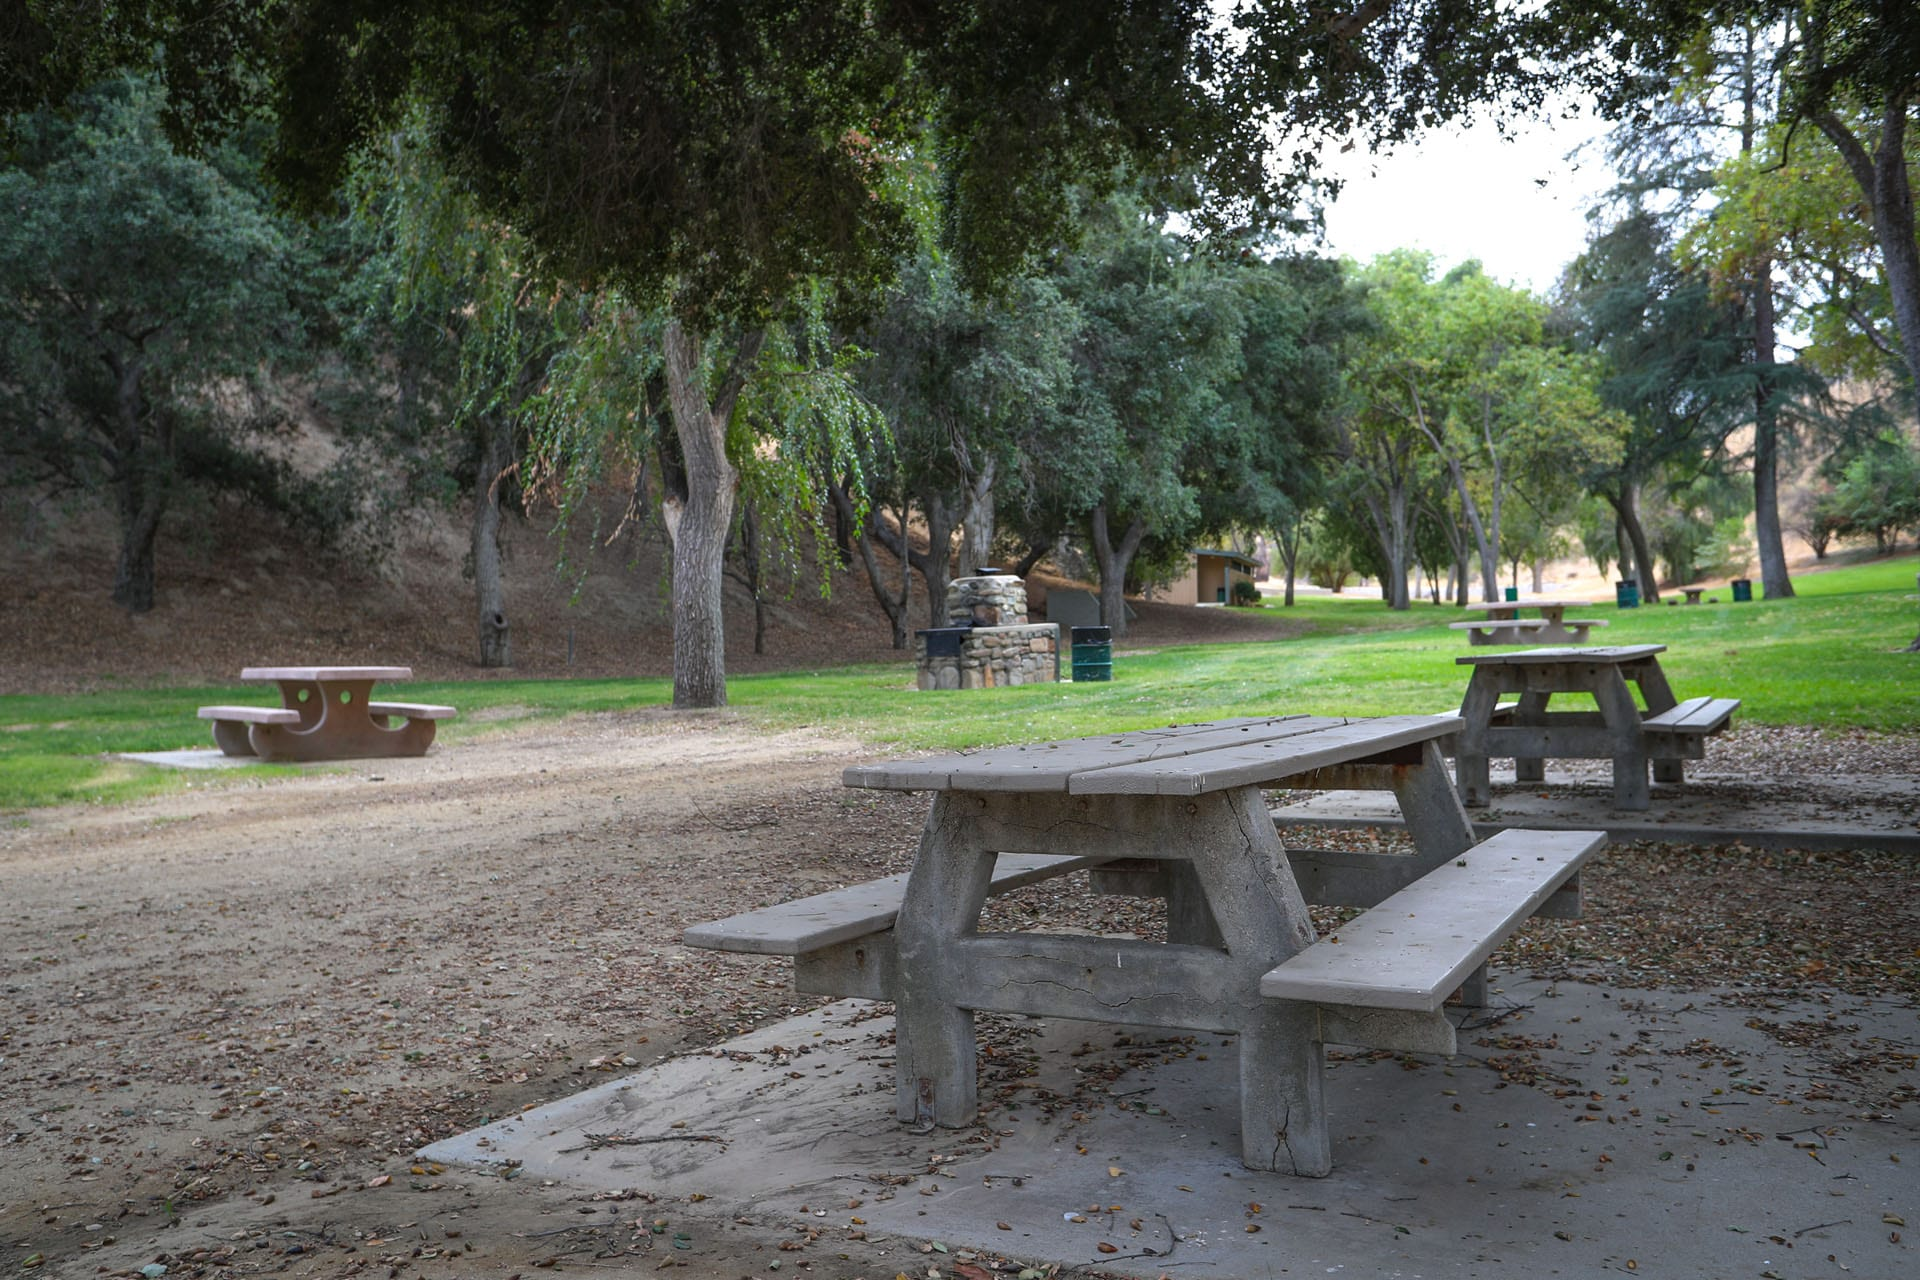 Picnic tables in a valley-like grass area with trees